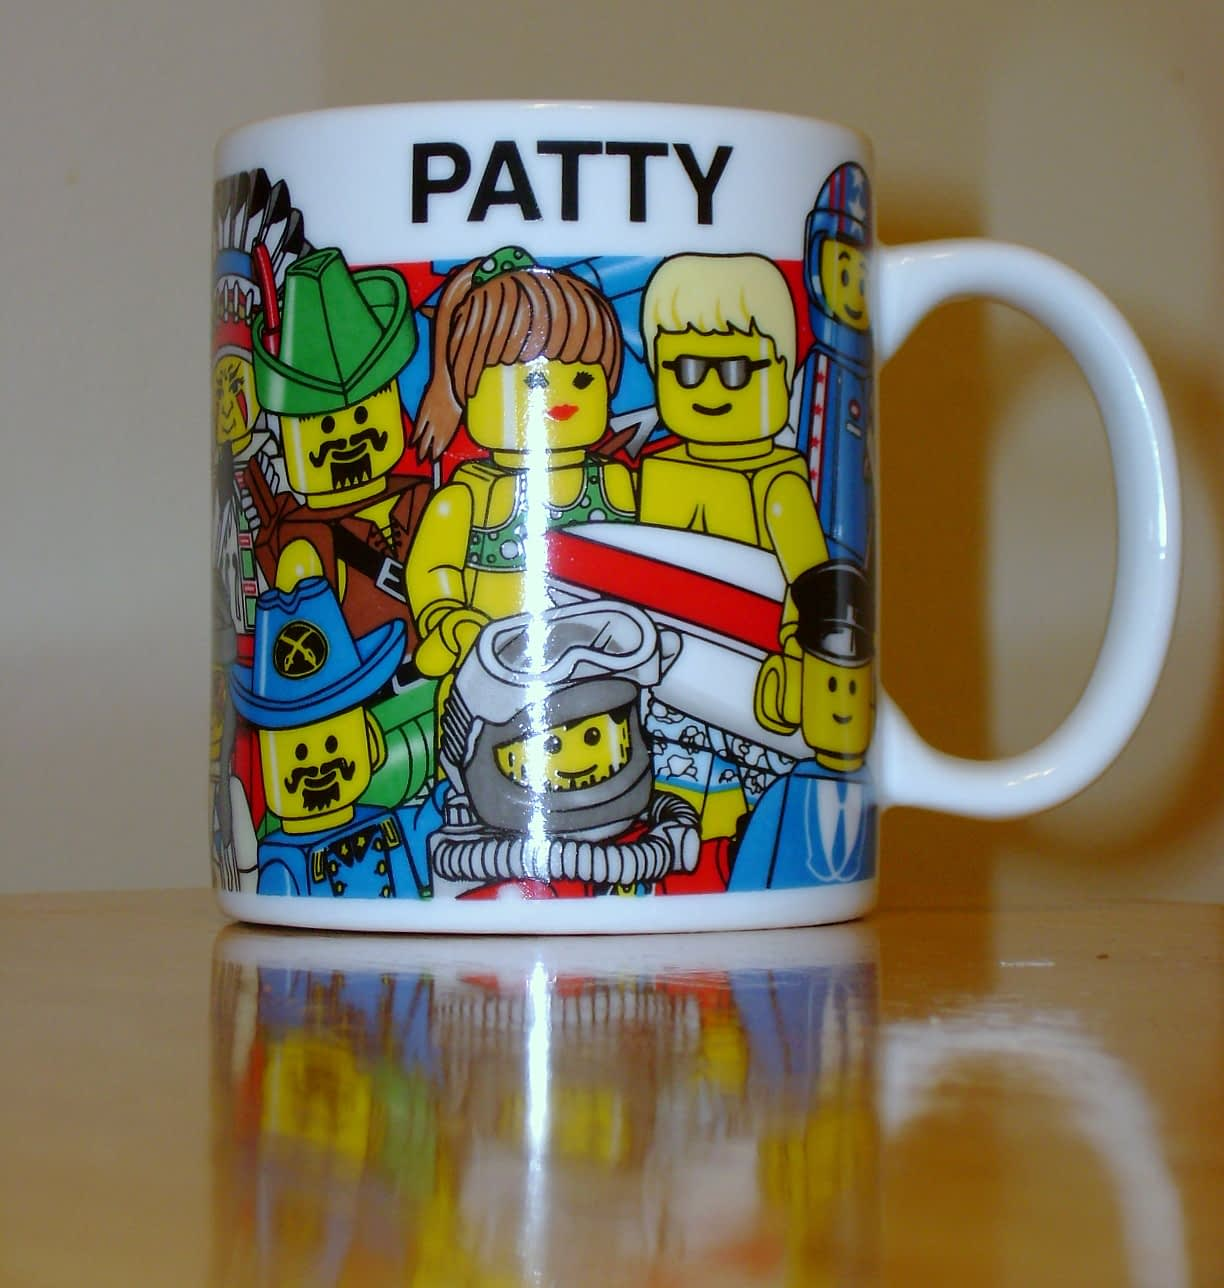 The PATTY Mug